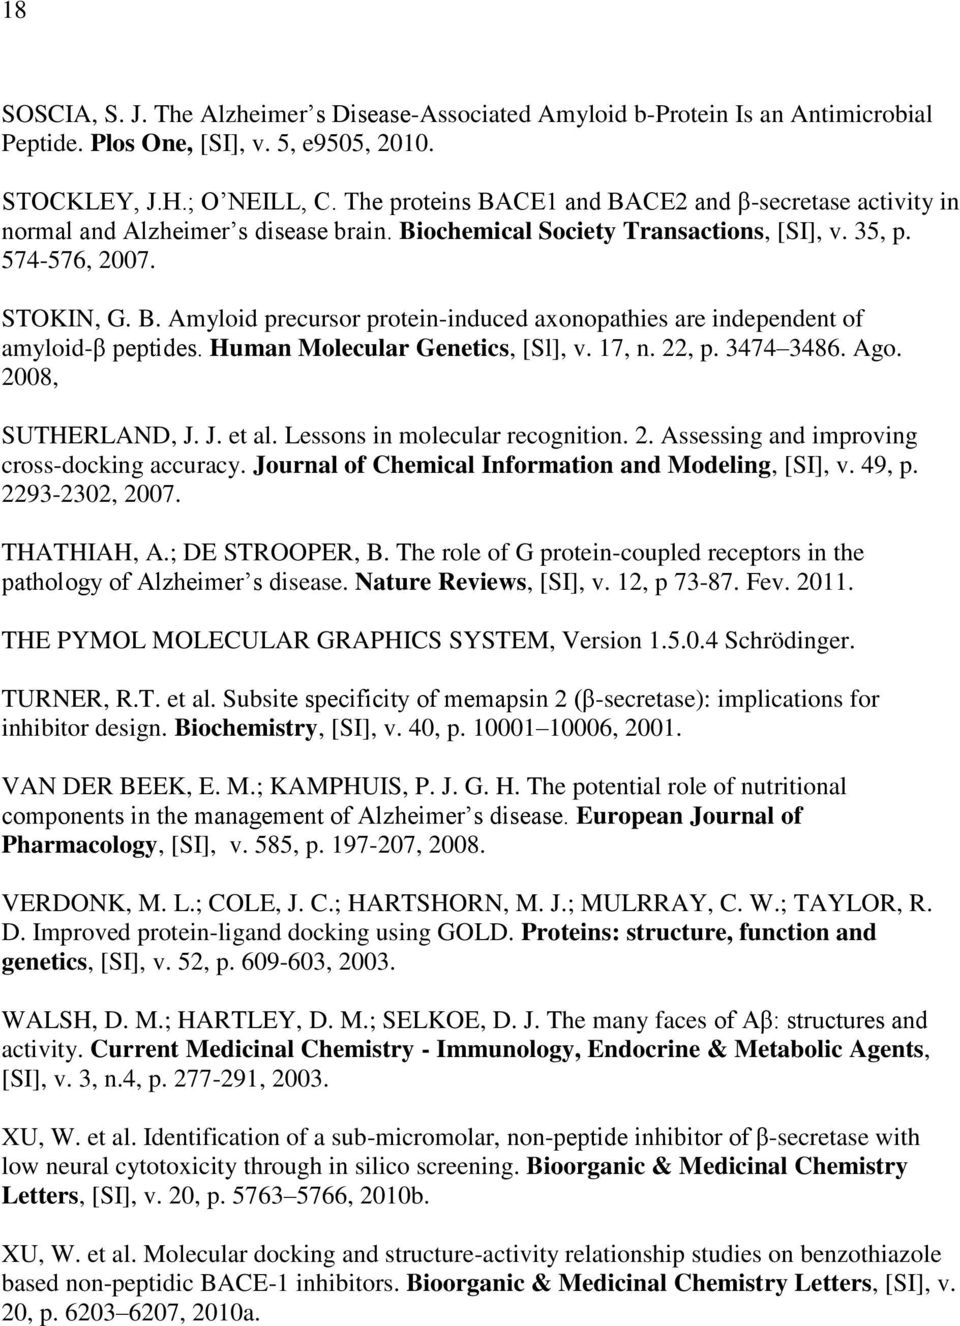 Human Molecular Genetics, [Sl], v. 17, n. 22, p. 3474 3486. Ago. 2008, SUTHERLAND, J. J. et al. Lessons in molecular recognition. 2. Assessing and improving cross-docking accuracy.